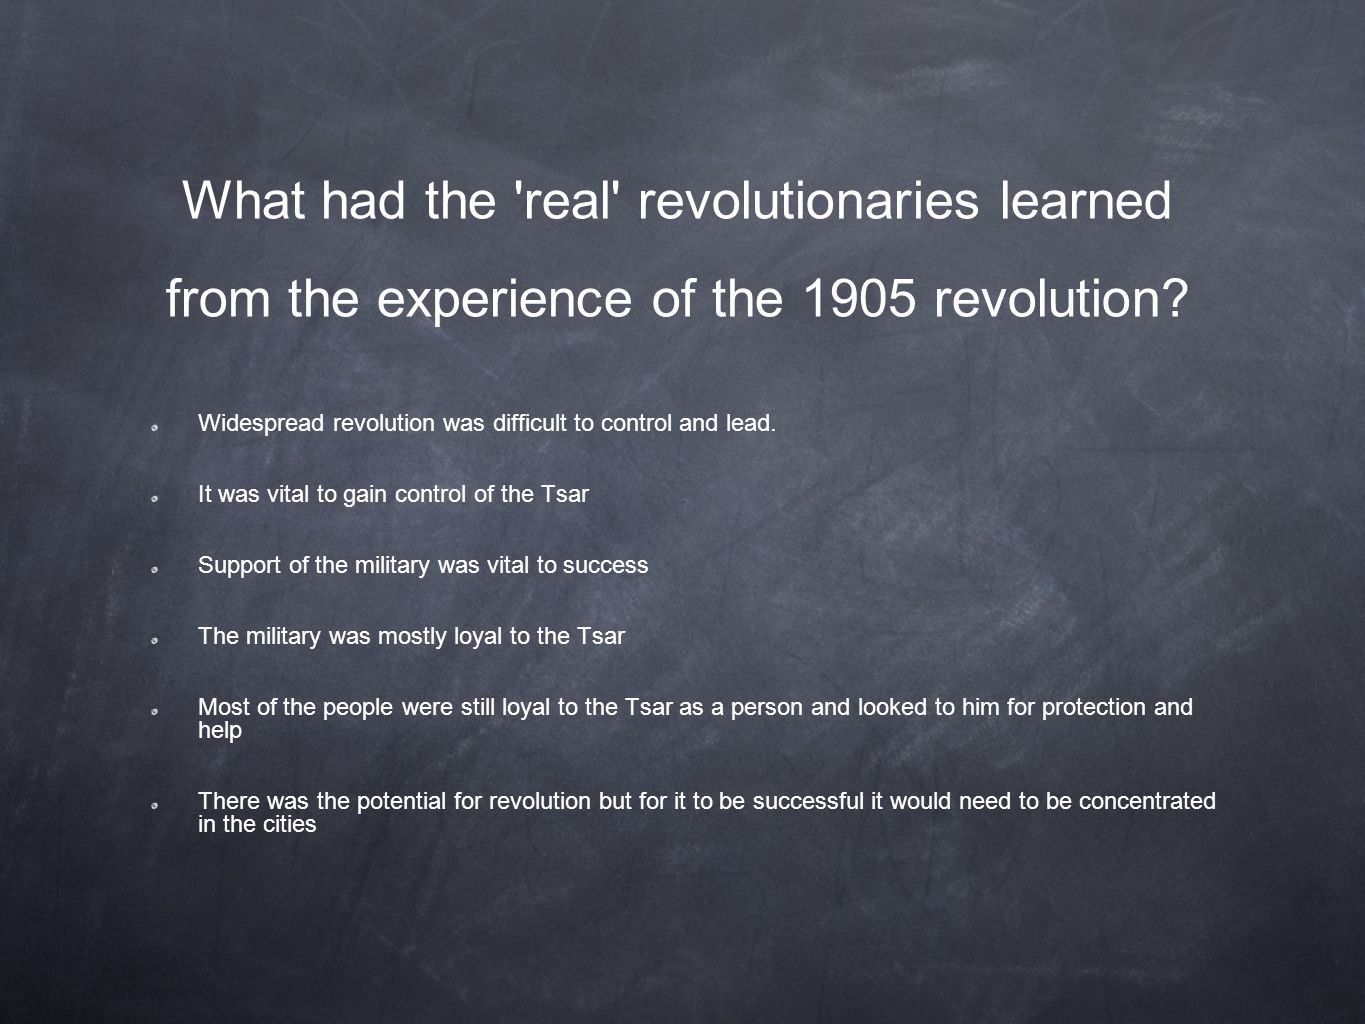 What had the real revolutionaries learned from the experience of the 1905 revolution.